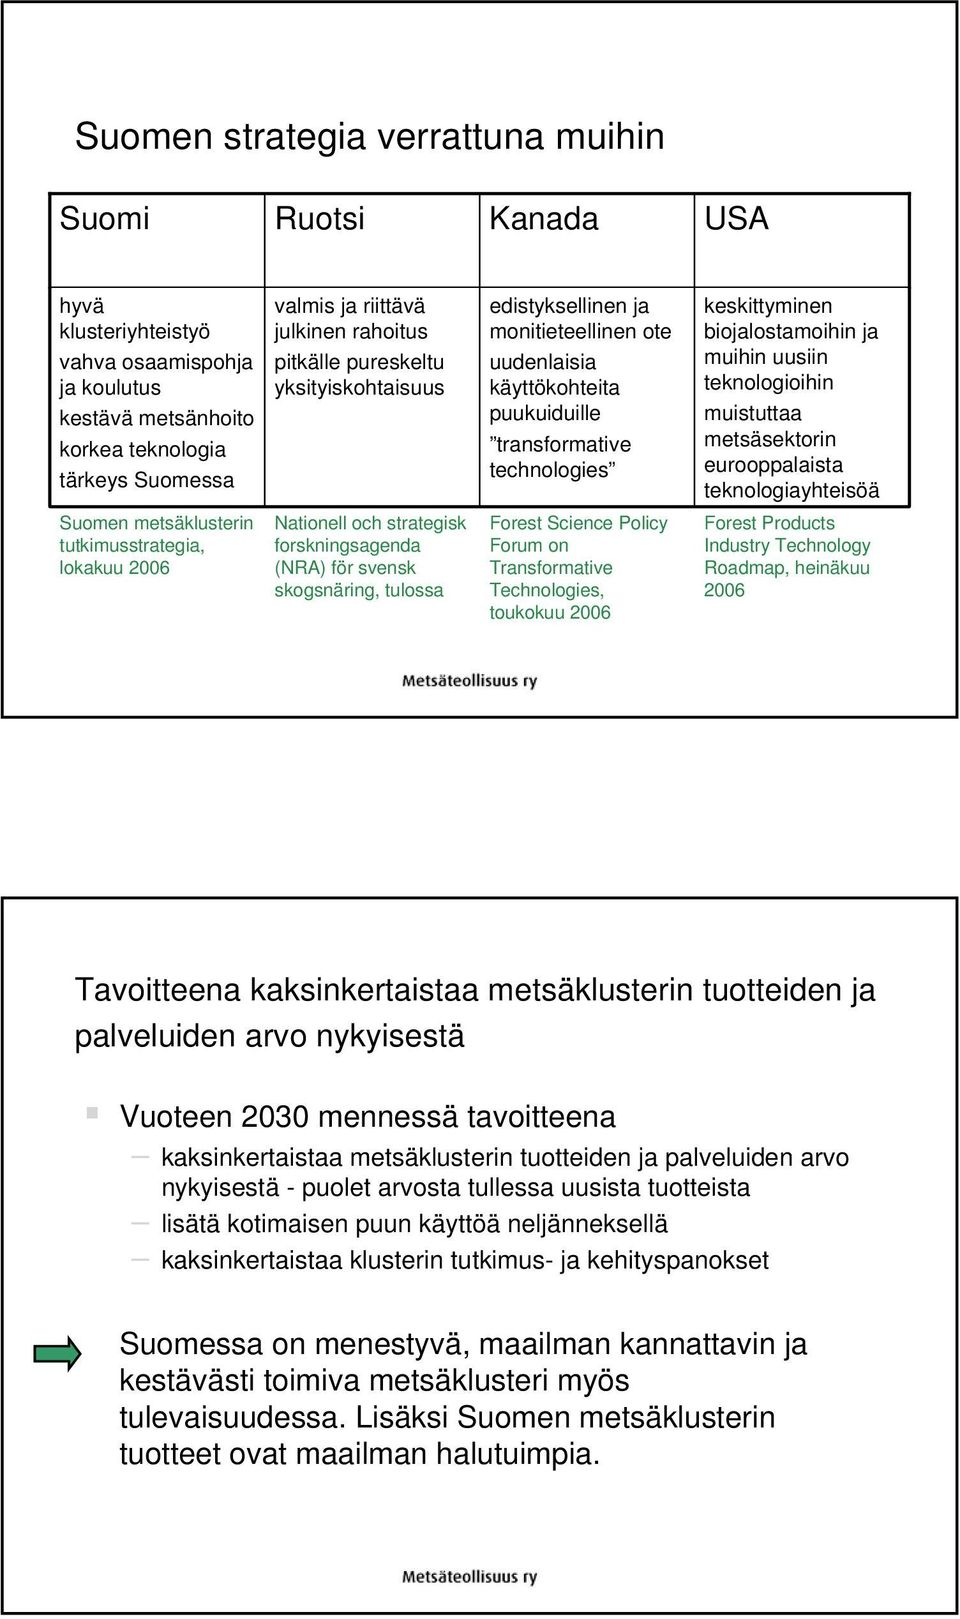 edistyksellinen ja monitieteellinen ote uudenlaisia käyttökohteita puukuiduille transformative technologies Forest Science Policy Forum on Transformative Technologies, toukokuu 2006 keskittyminen